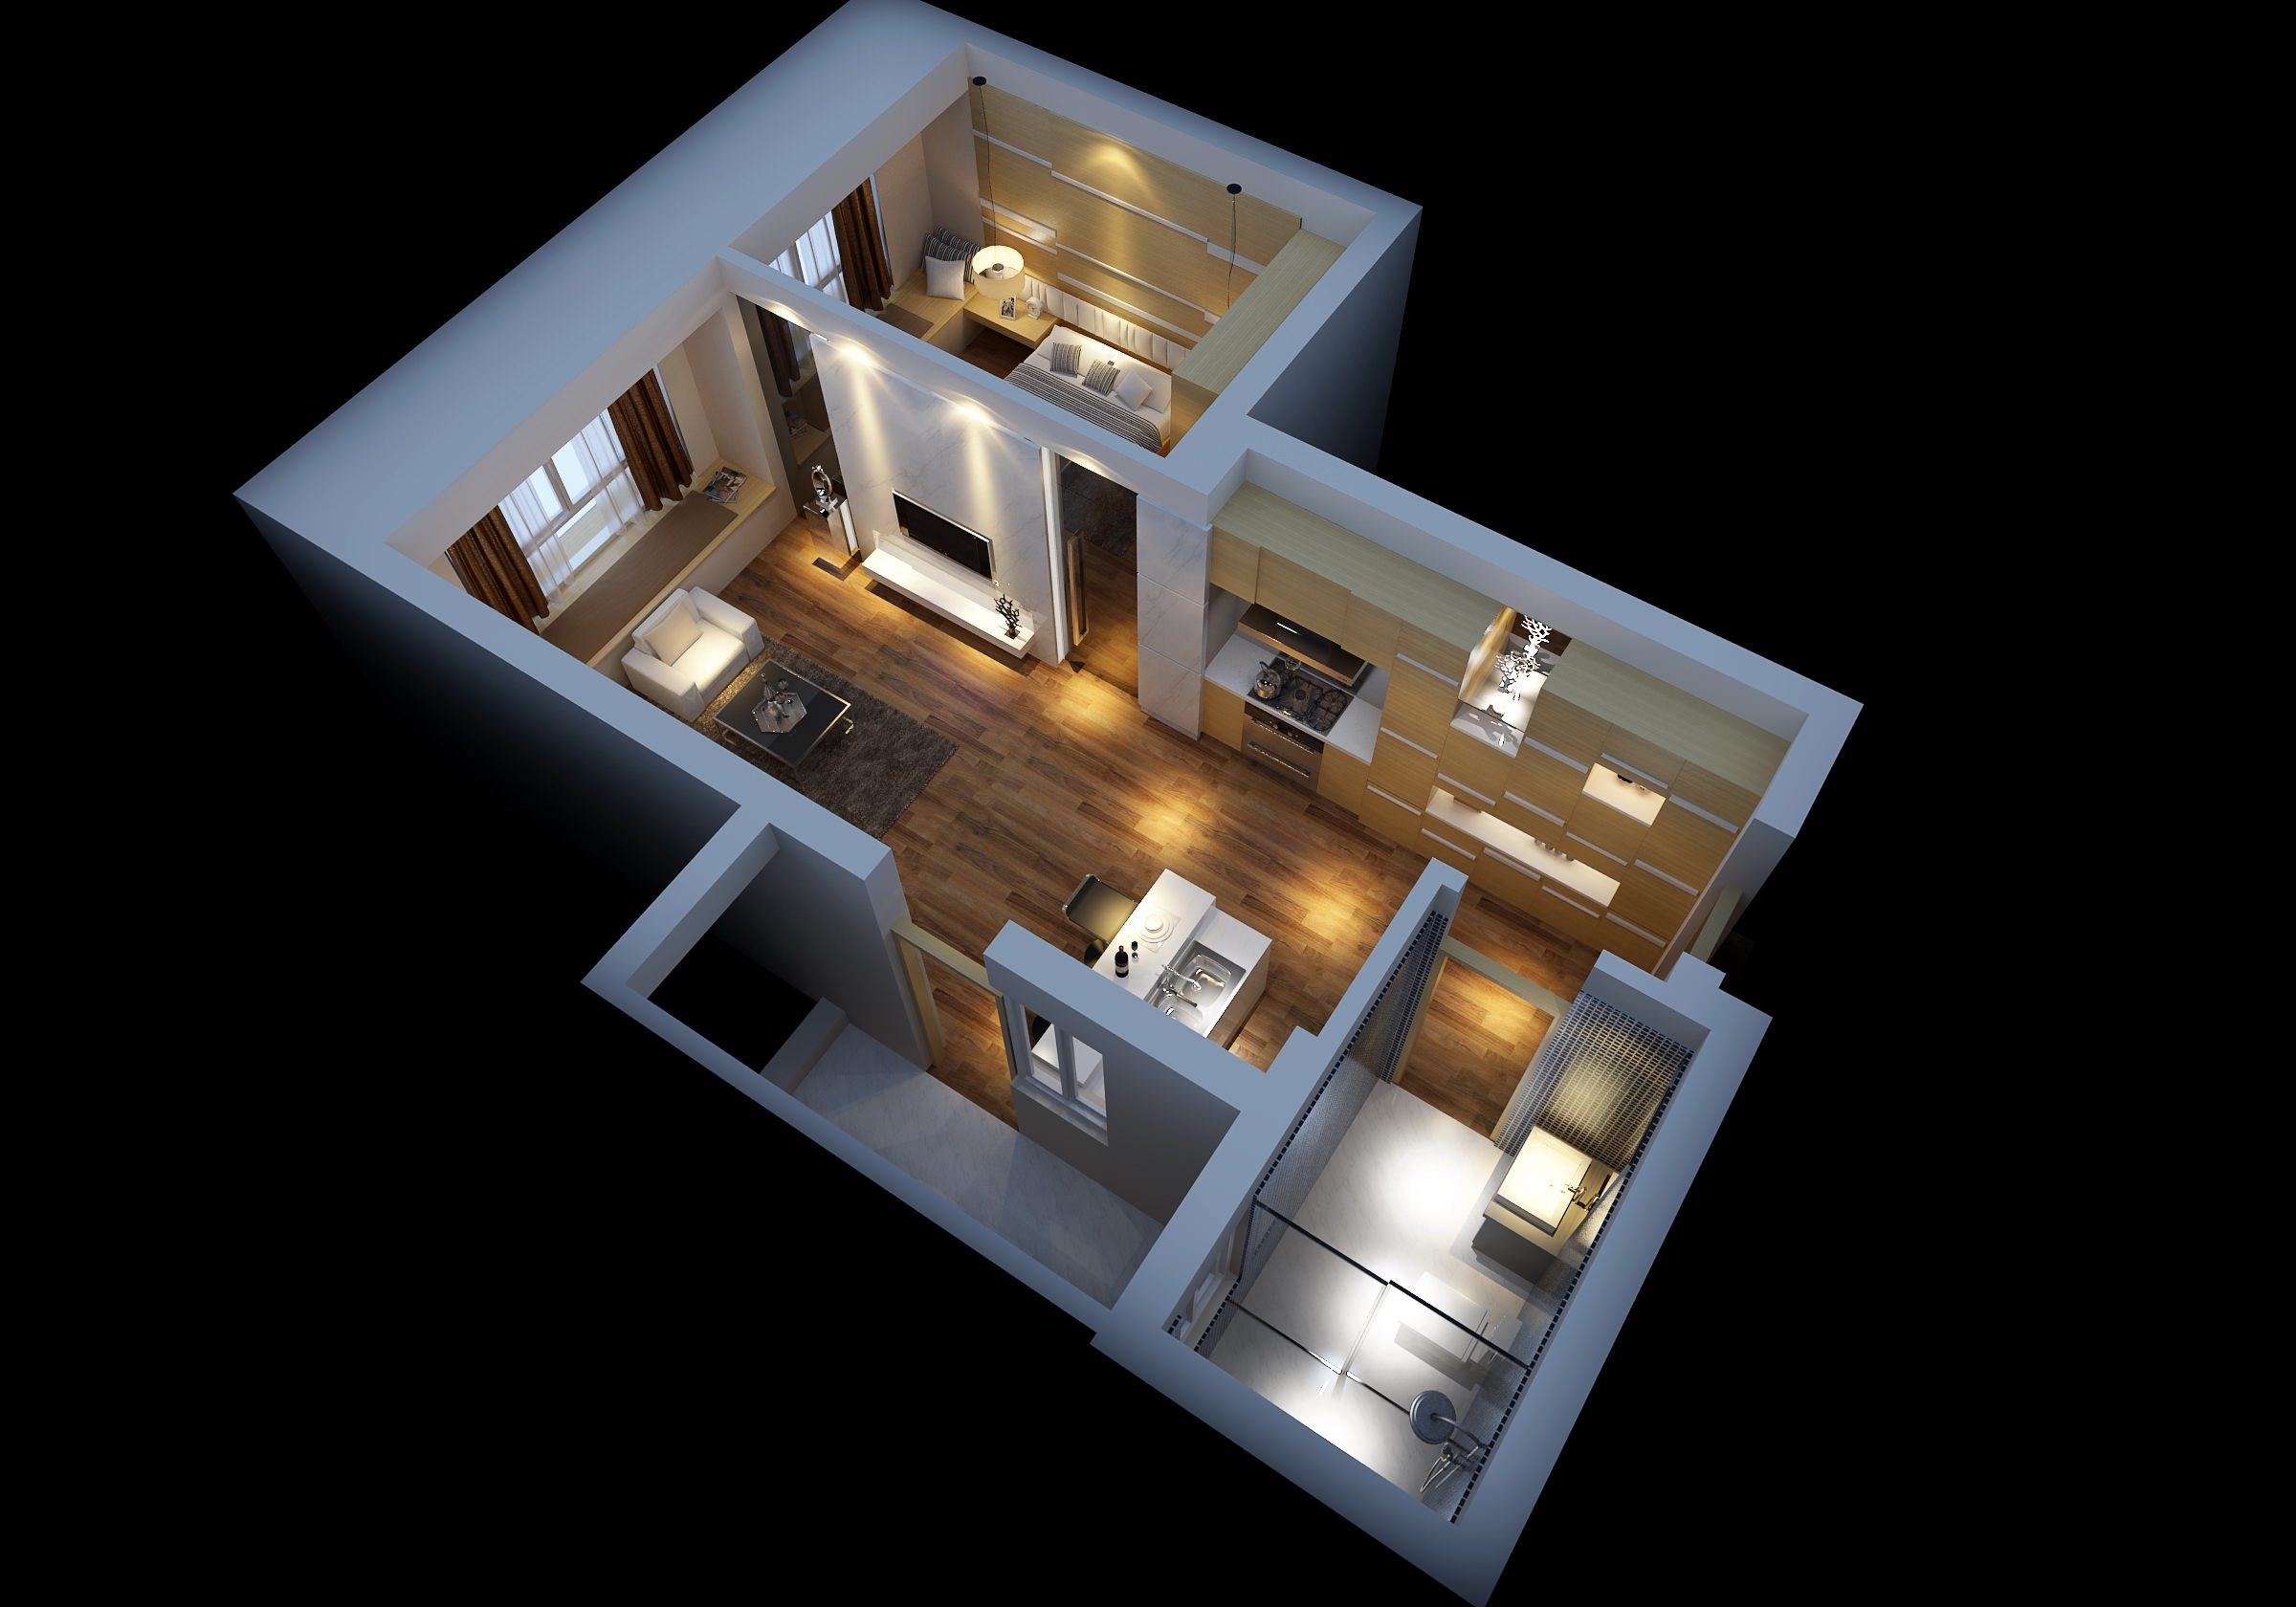 Modern house interior with wooden floor fu 3d model max for New model contemporary house